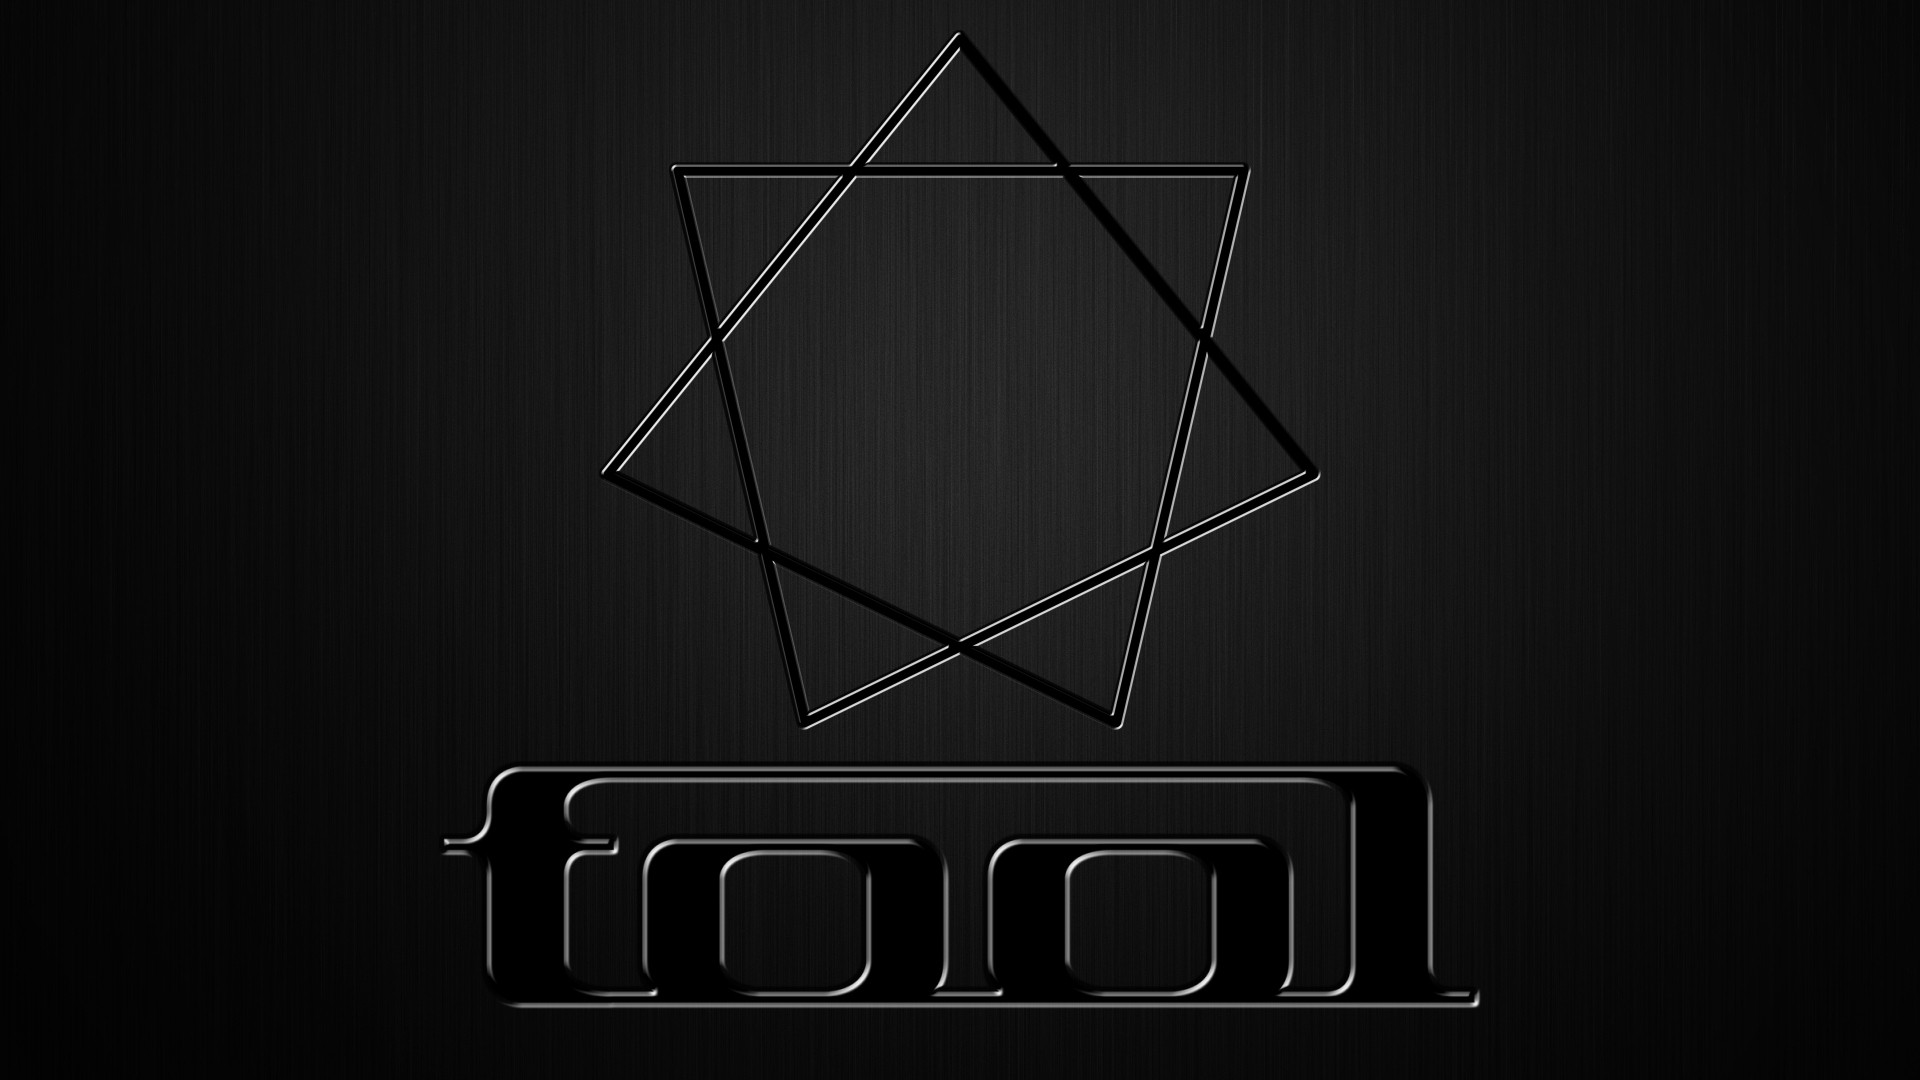 Tool Hd Wallpaper Posted By Christopher Johnson